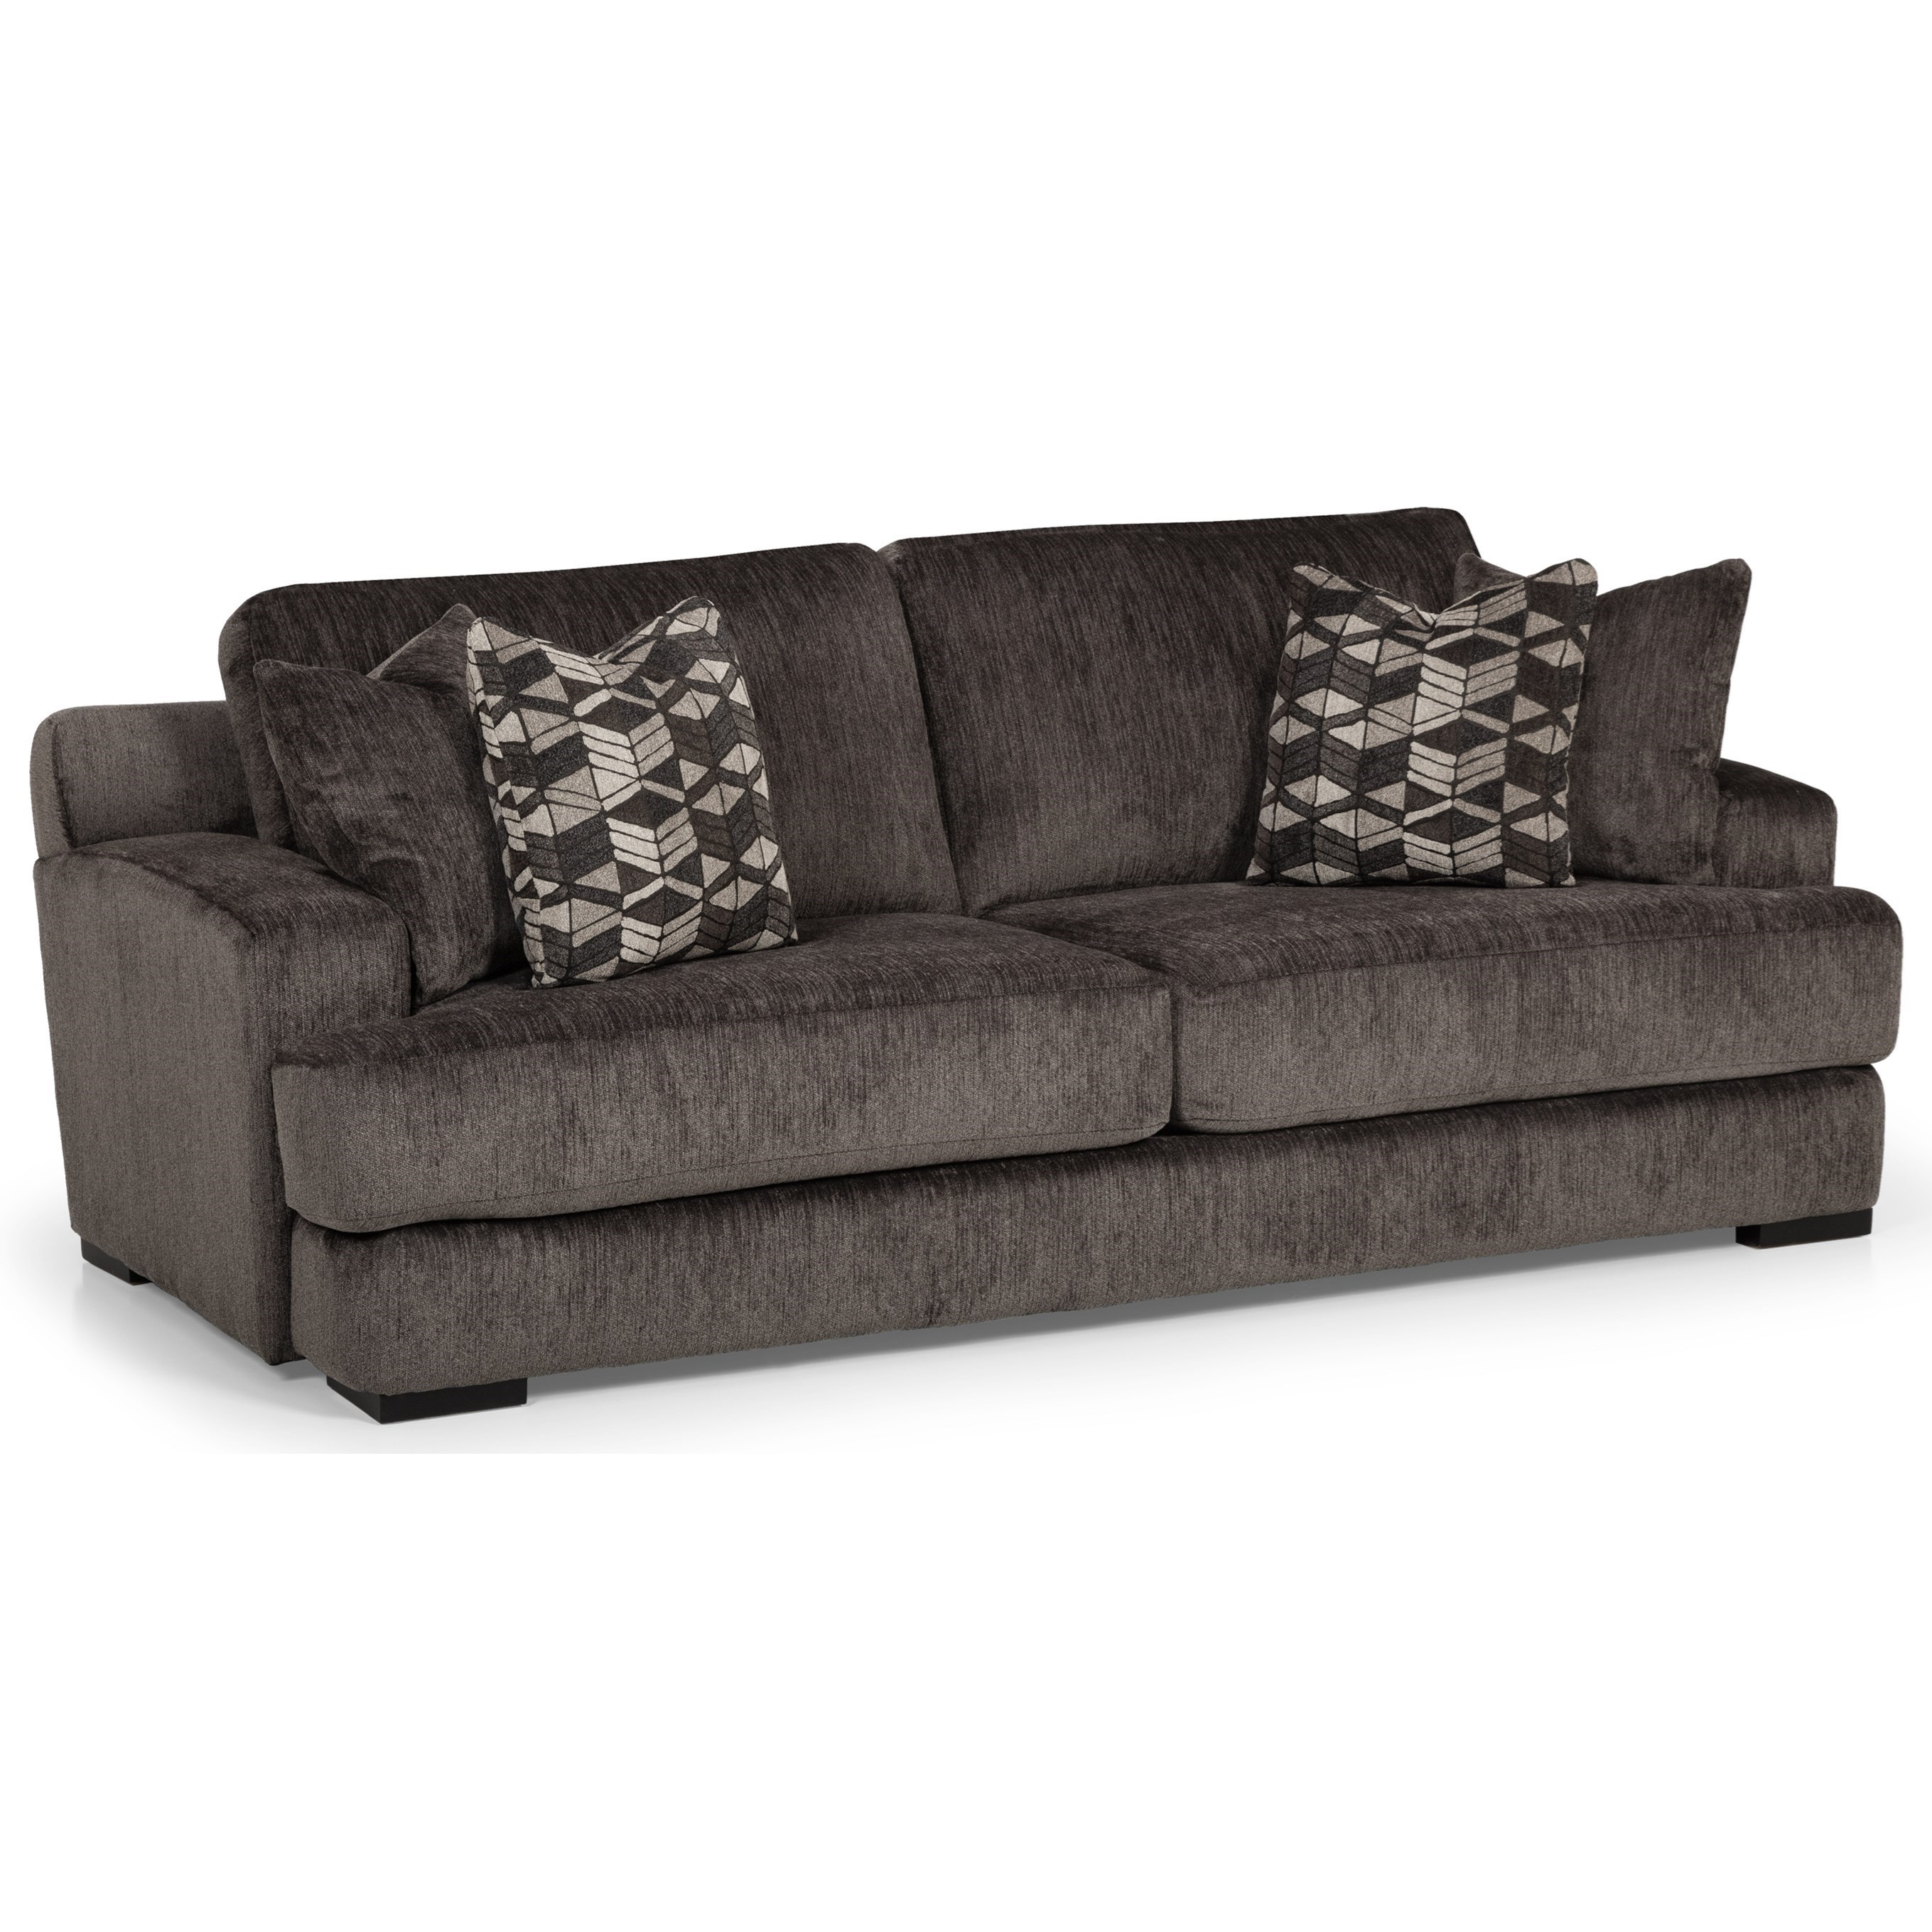 542 Sofa by Stanton at Wilson's Furniture